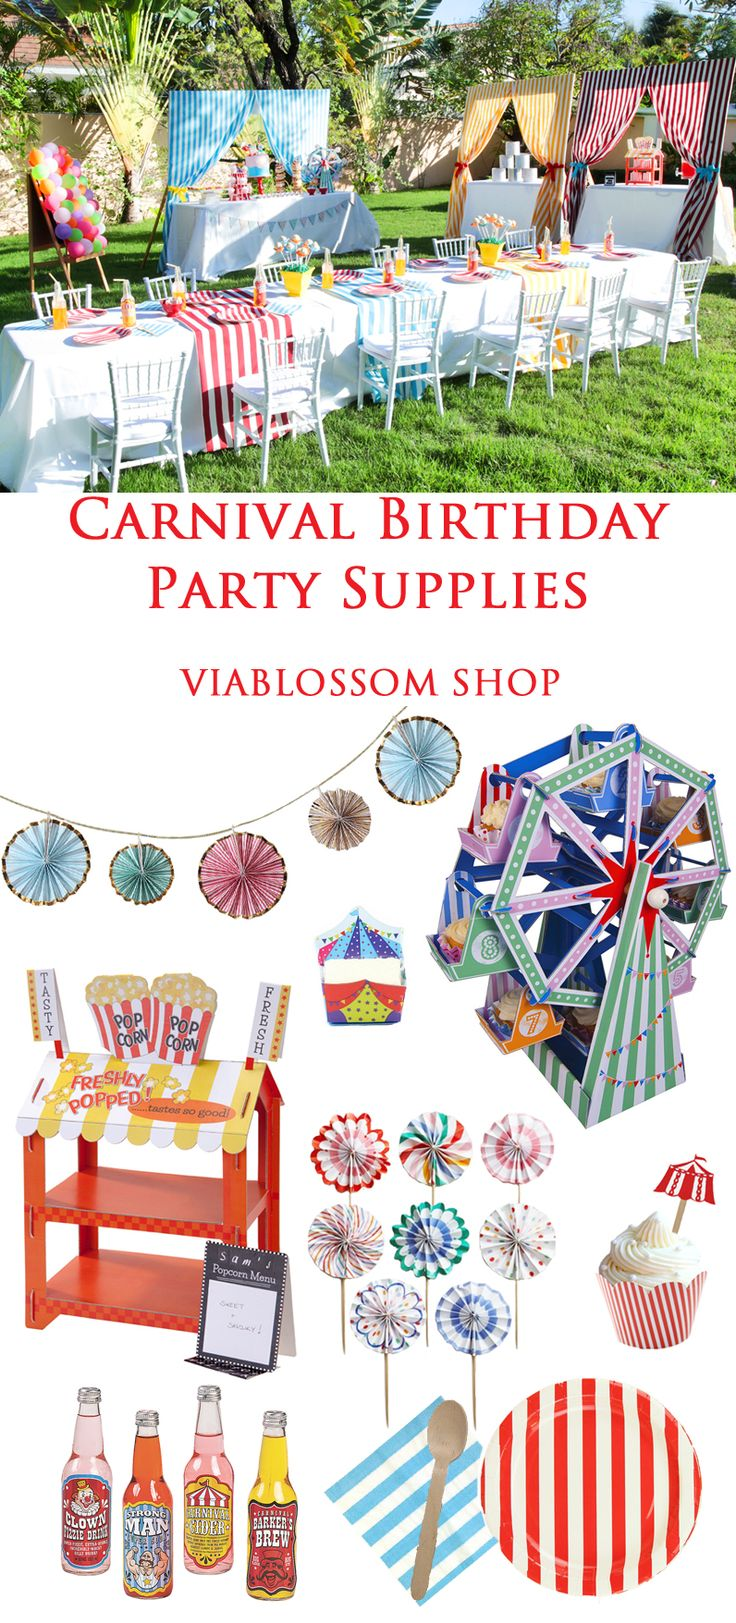 Carnival Birthday Party Supplies for the coolest party in town!!!  All available at the Via Blossom Shop!